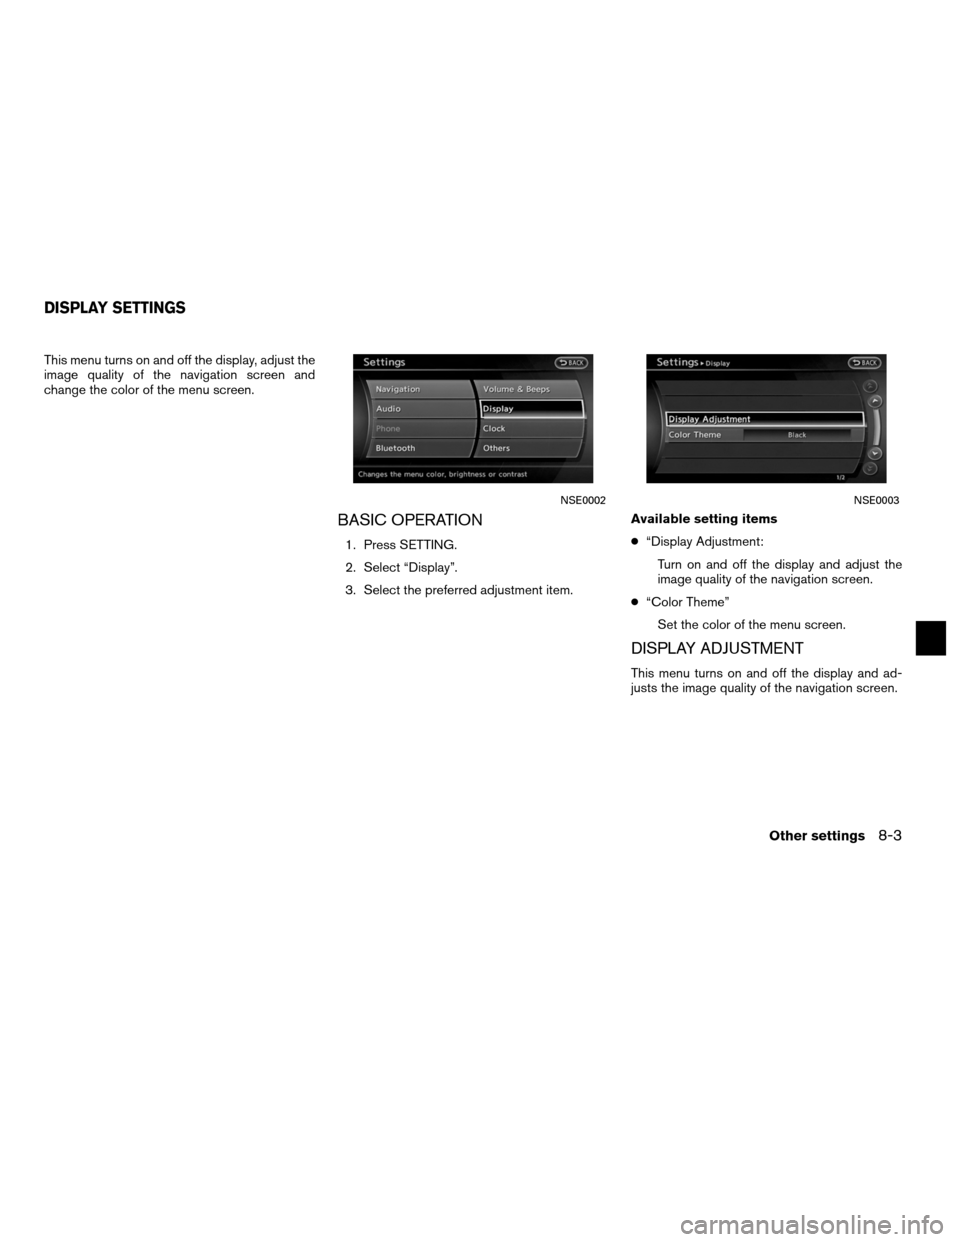 NISSAN ALTIMA COUPE 2012 D32 / 4.G Navigation Manual, Page 215